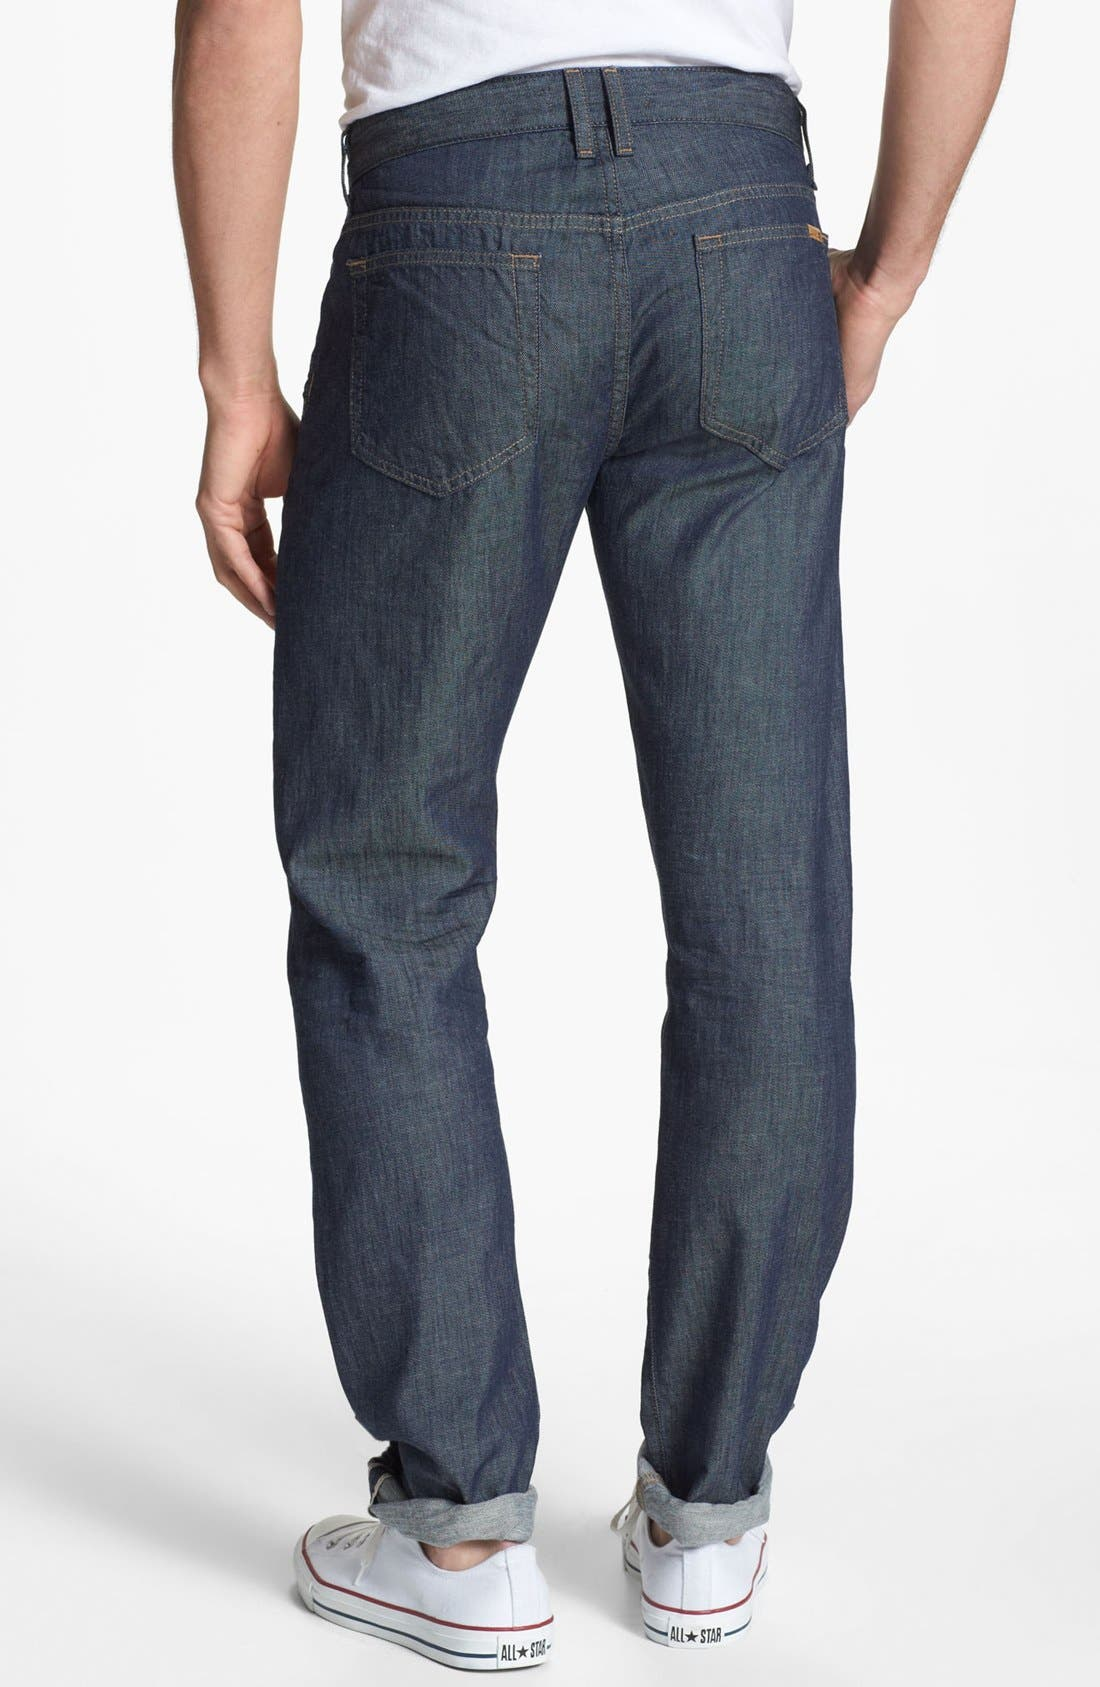 Alternate Image 1 Selected - Joe's 'Brixton' Slim Fit Selvedge Jeans (Laures)